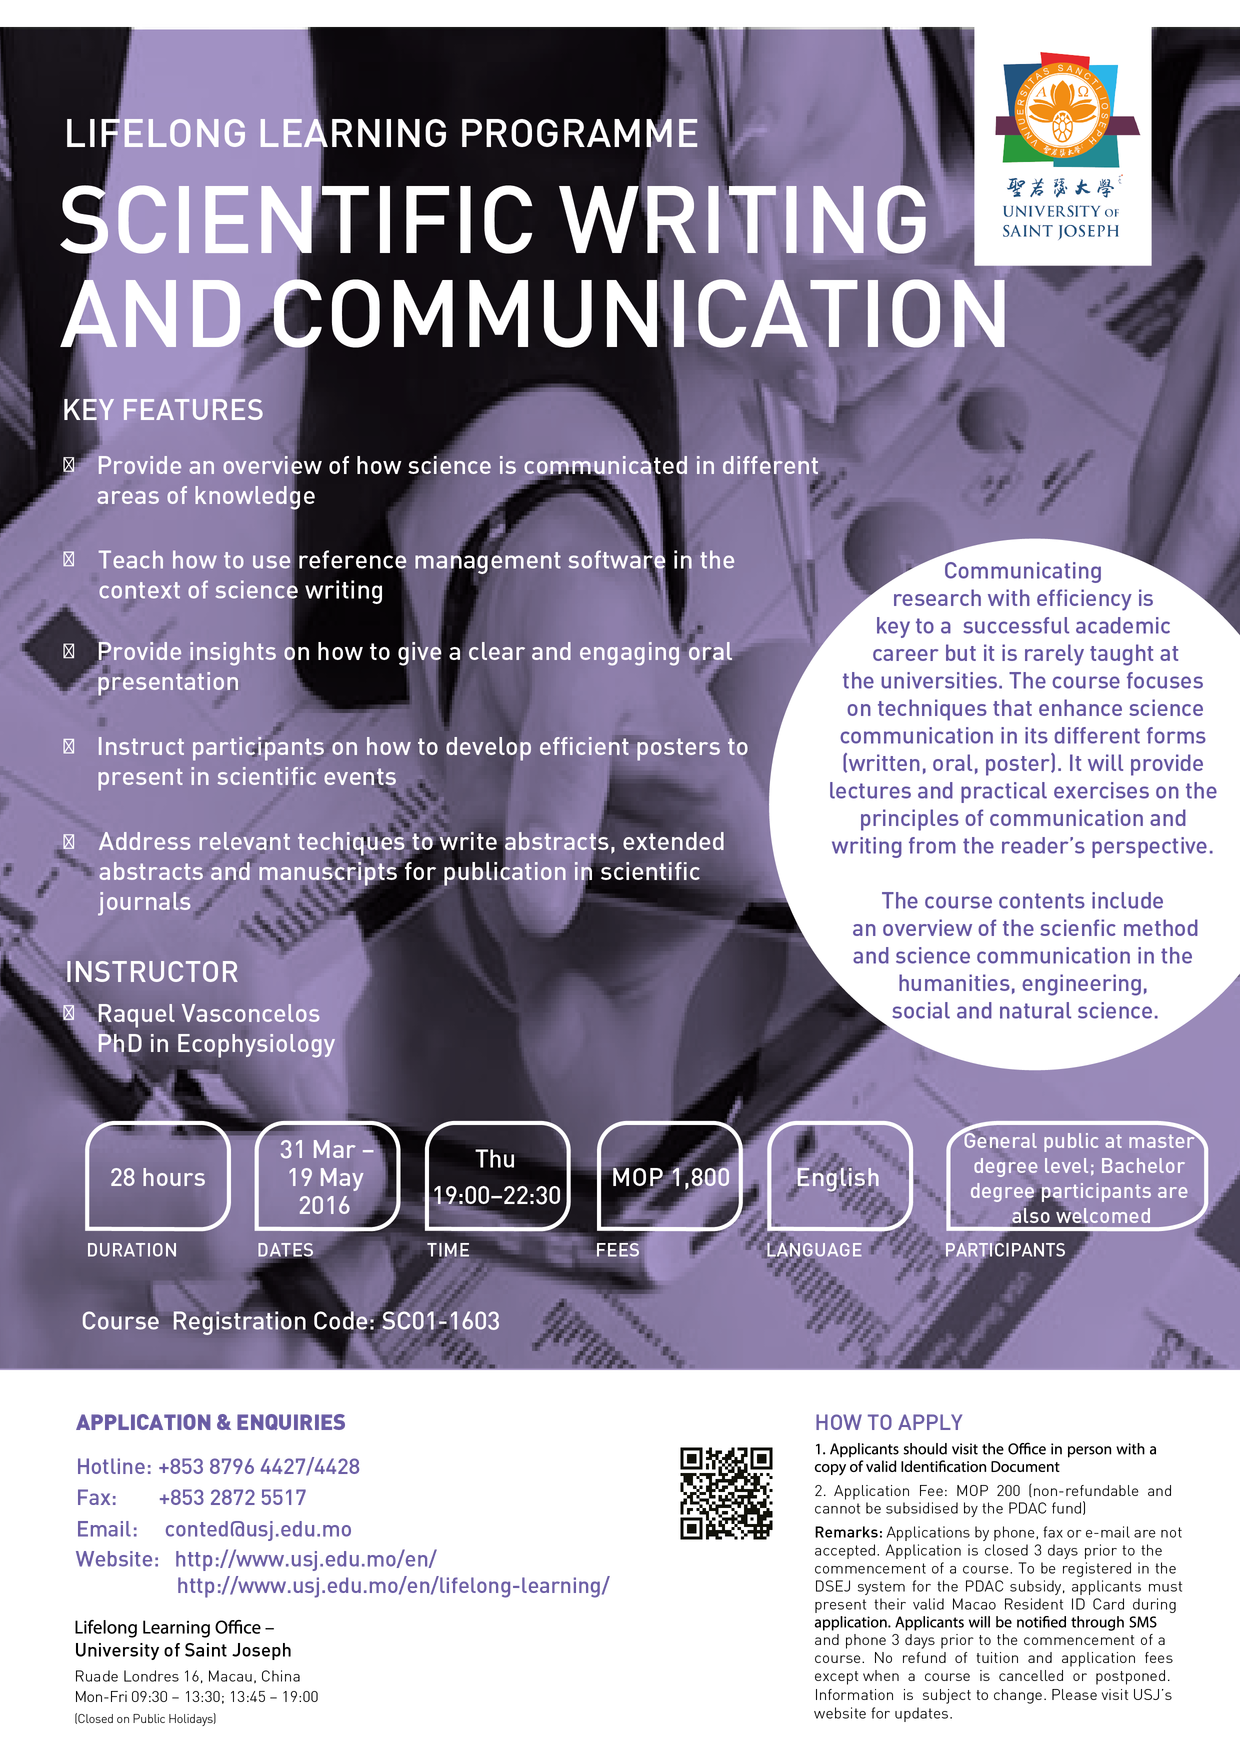 rsz_scientific_writing_and_communication-01